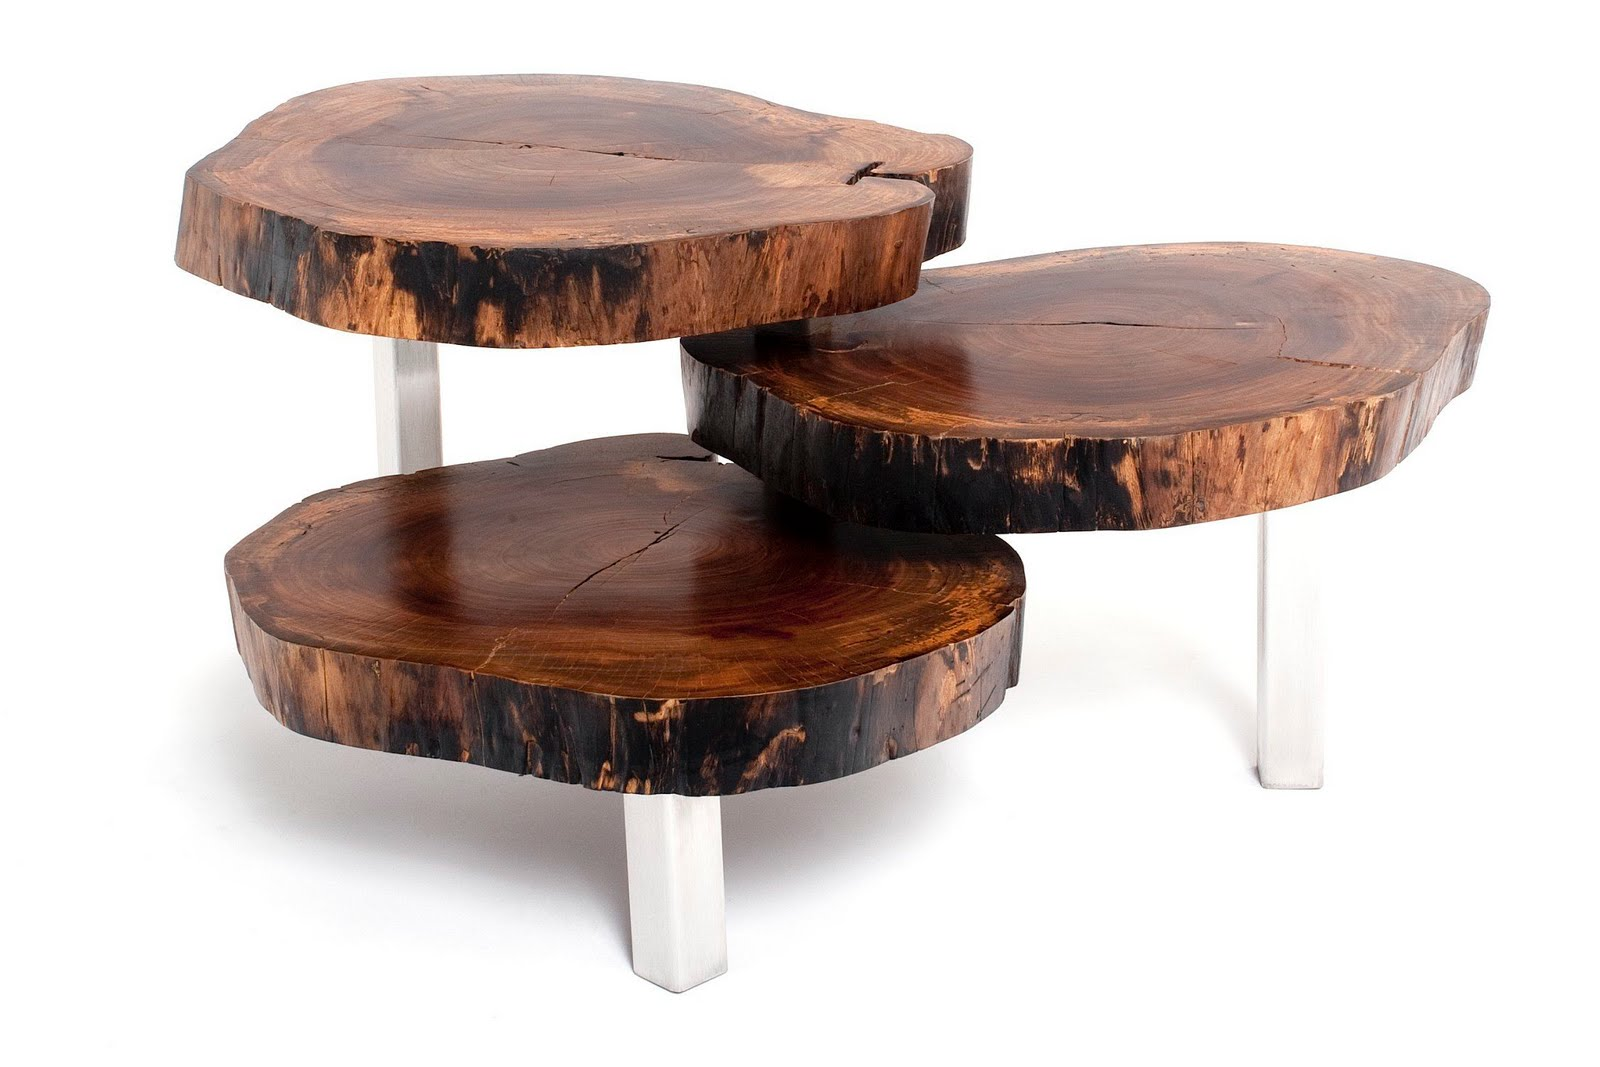 Eco friendly exotic wood tables globally gorgeous for Wooden coffee tables images